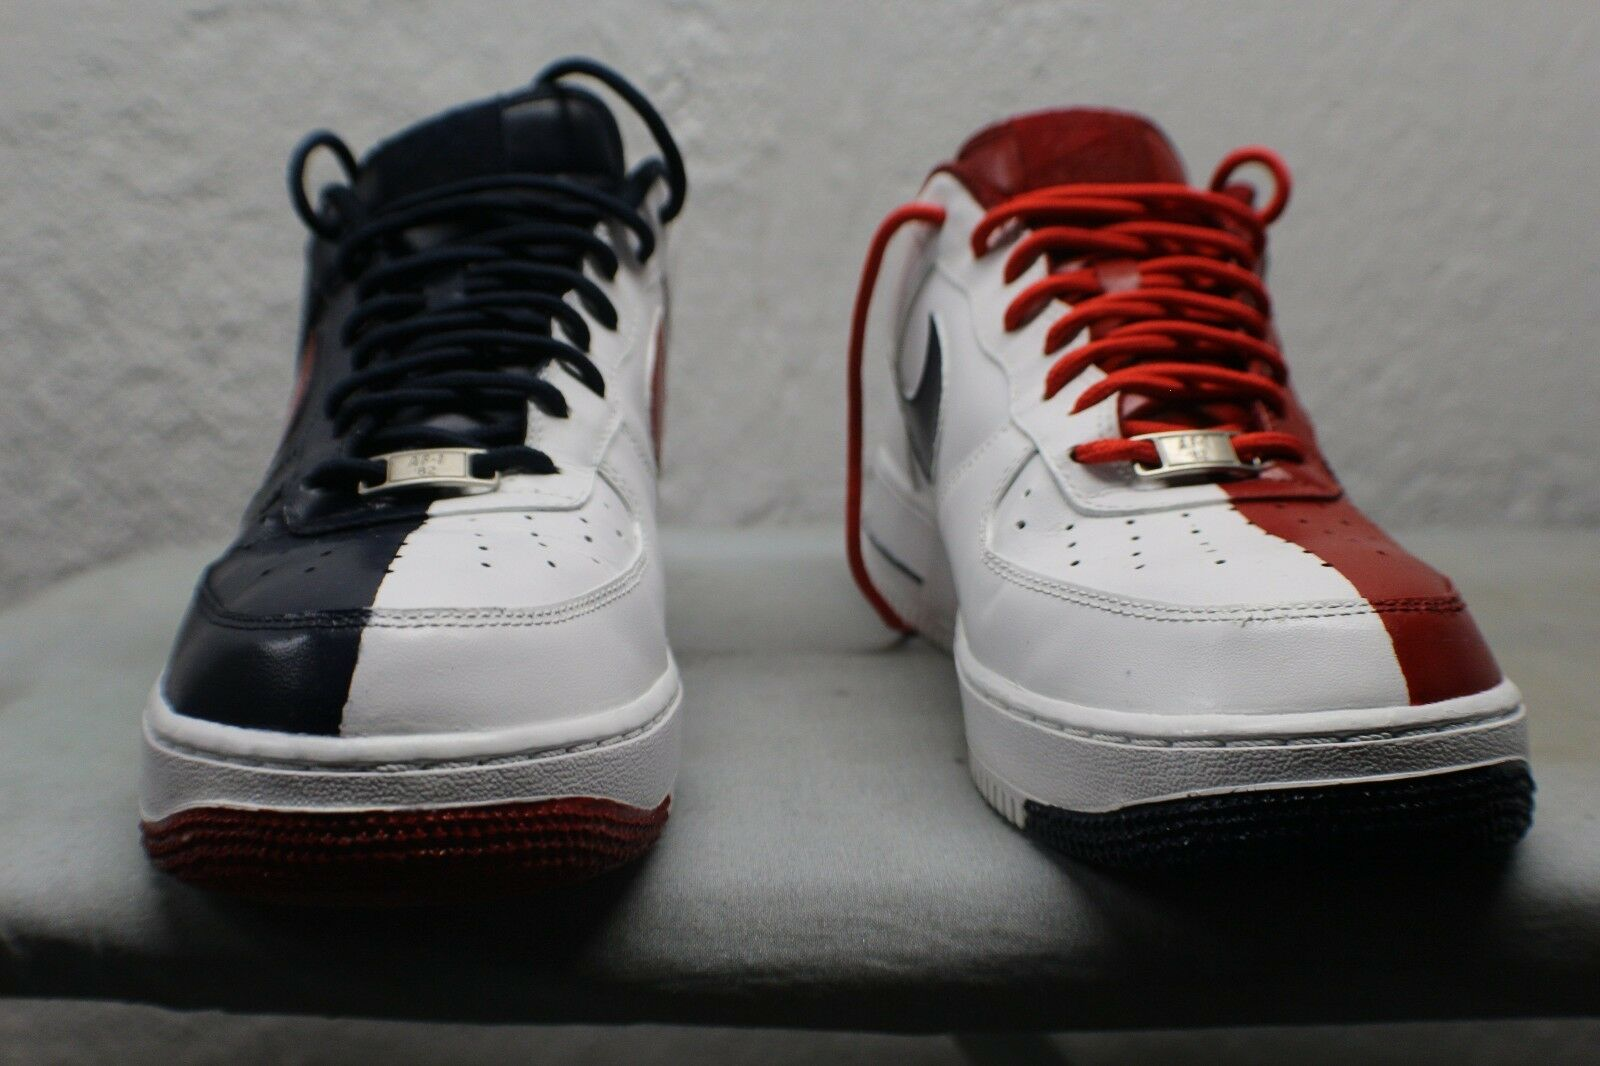 custom painted olympic style air force 1 sneakers